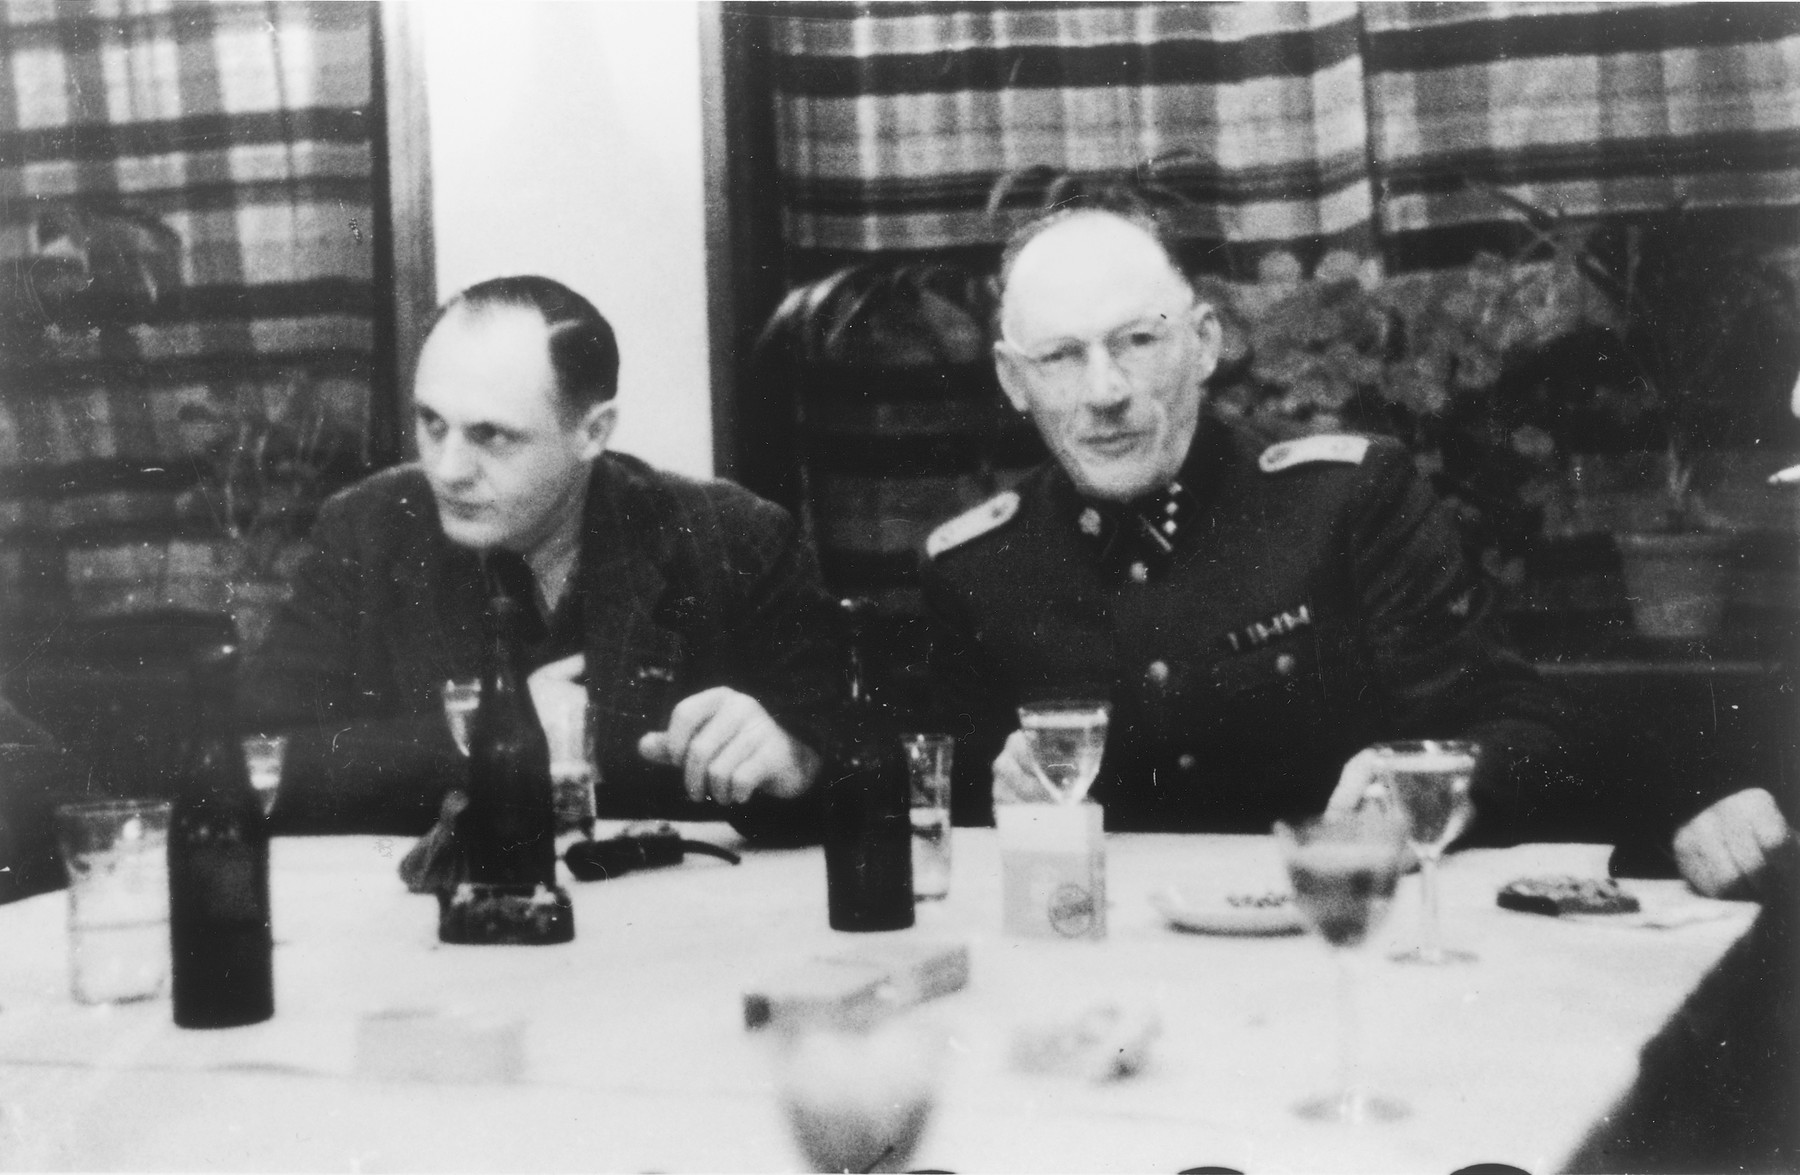 Two SS officers gather for drinks in a hunting lodge.  From left to right are Dr. Eduard Wirths and Heinrich Josten.